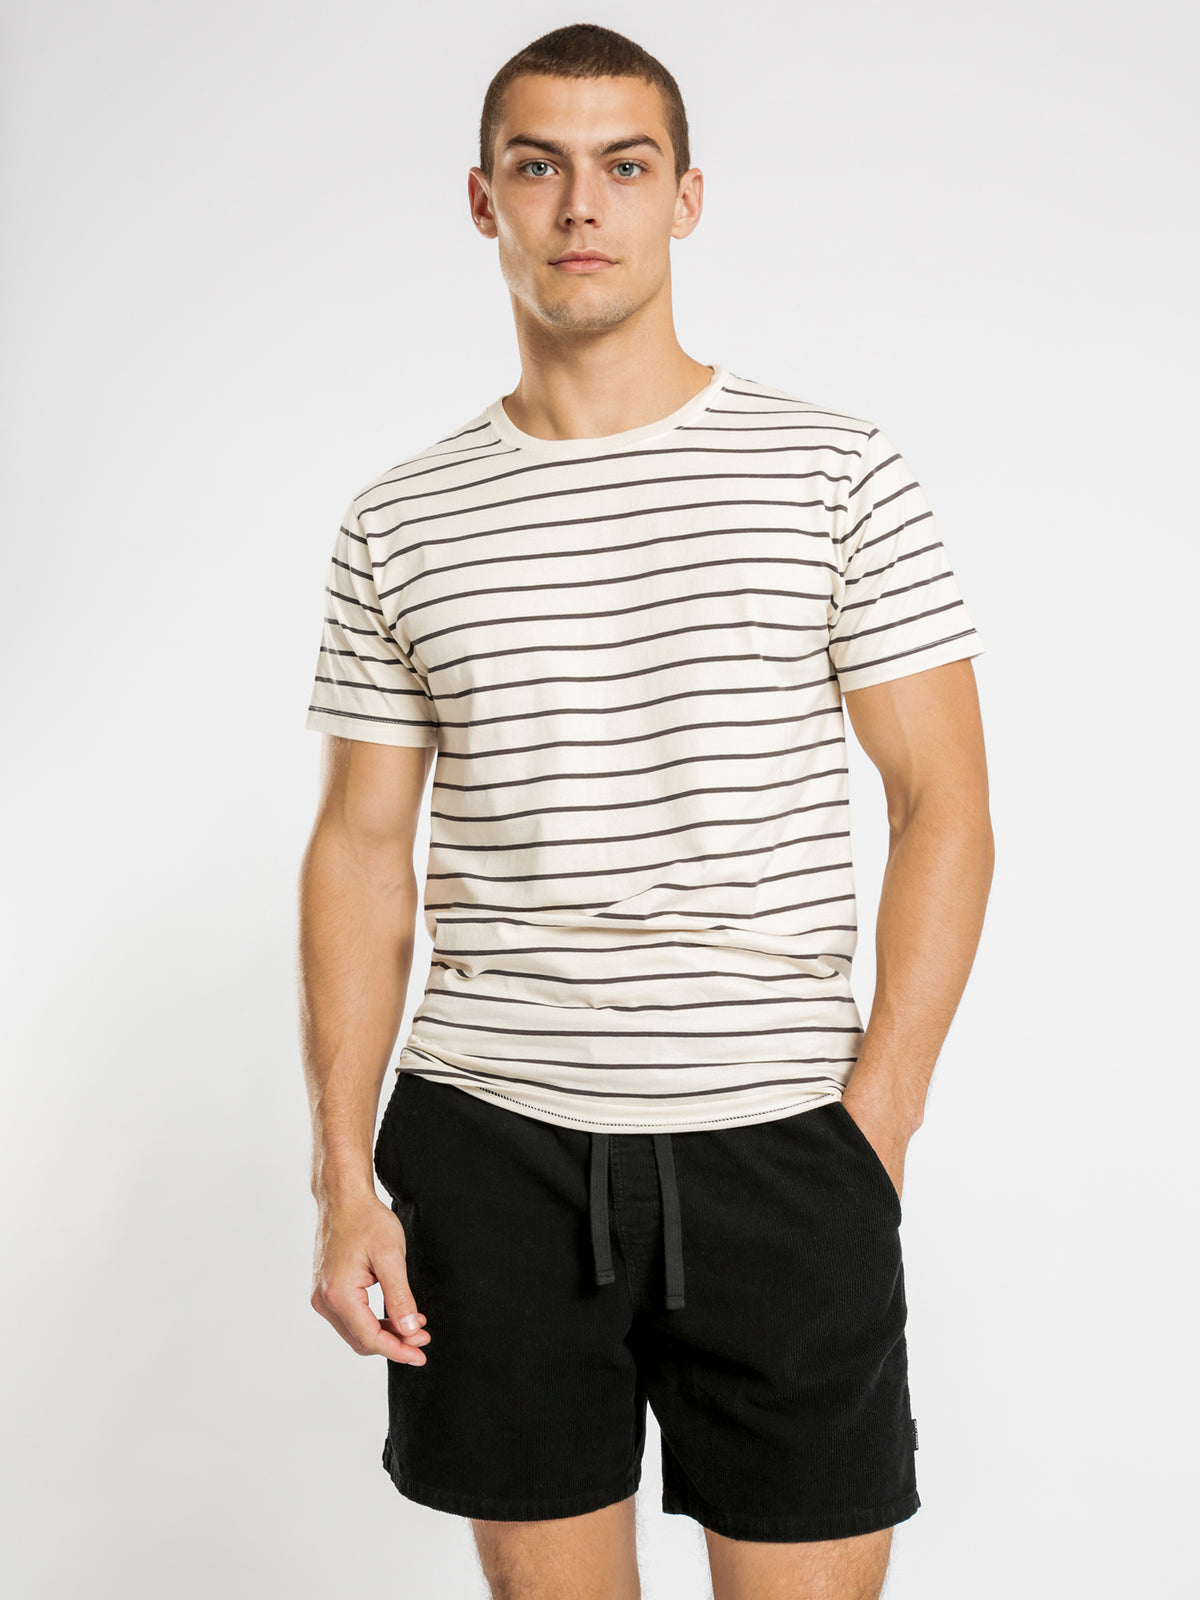 Casper Stripe T-Shirt in Stone